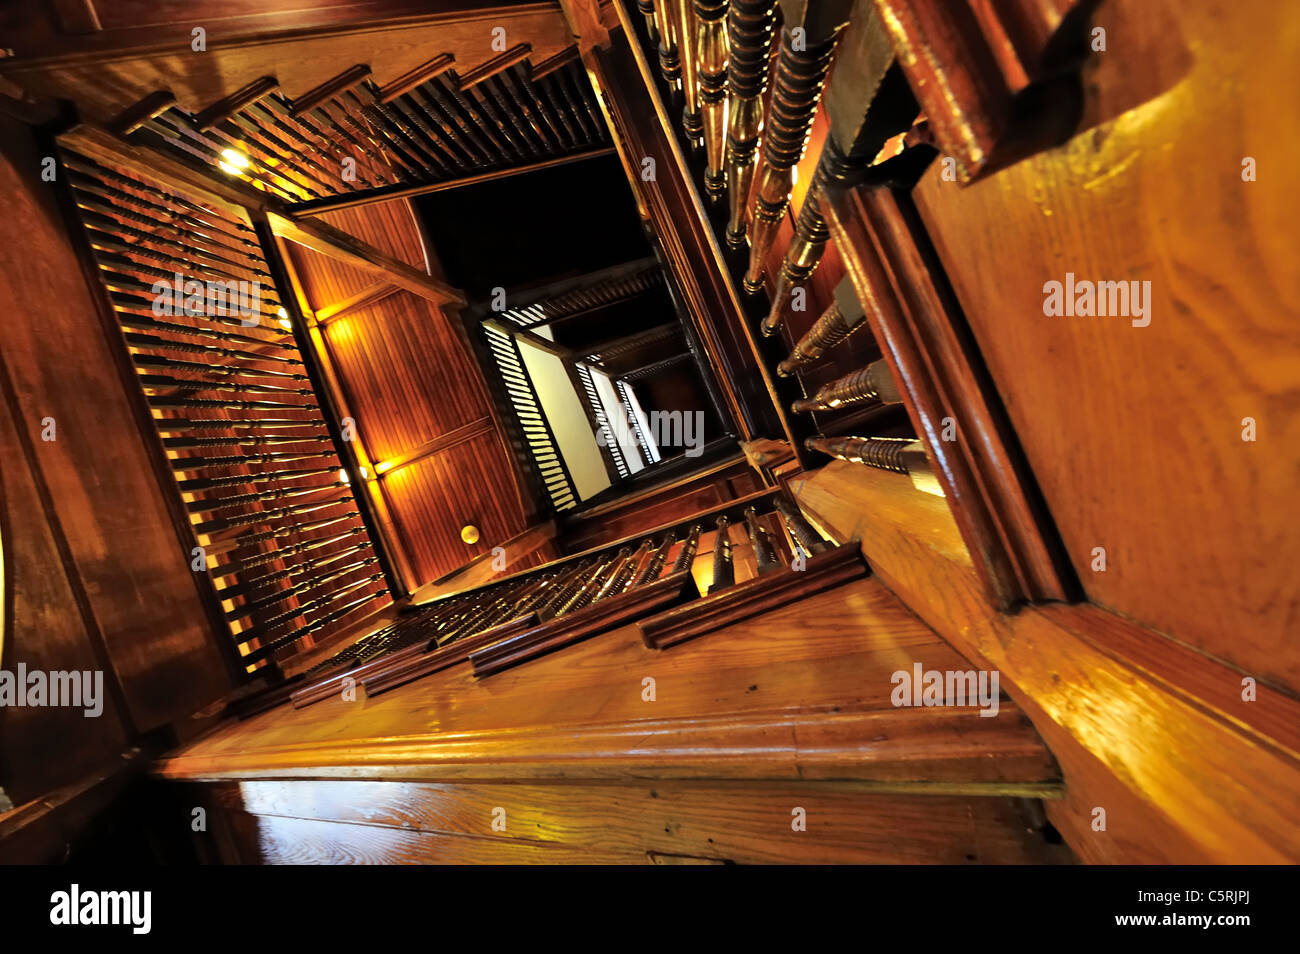 Mohonk Mountain House, interior view of rectangular spiral central wood staircase stairwell, NY, USA, 2010 - EDITORIAL Stock Photo